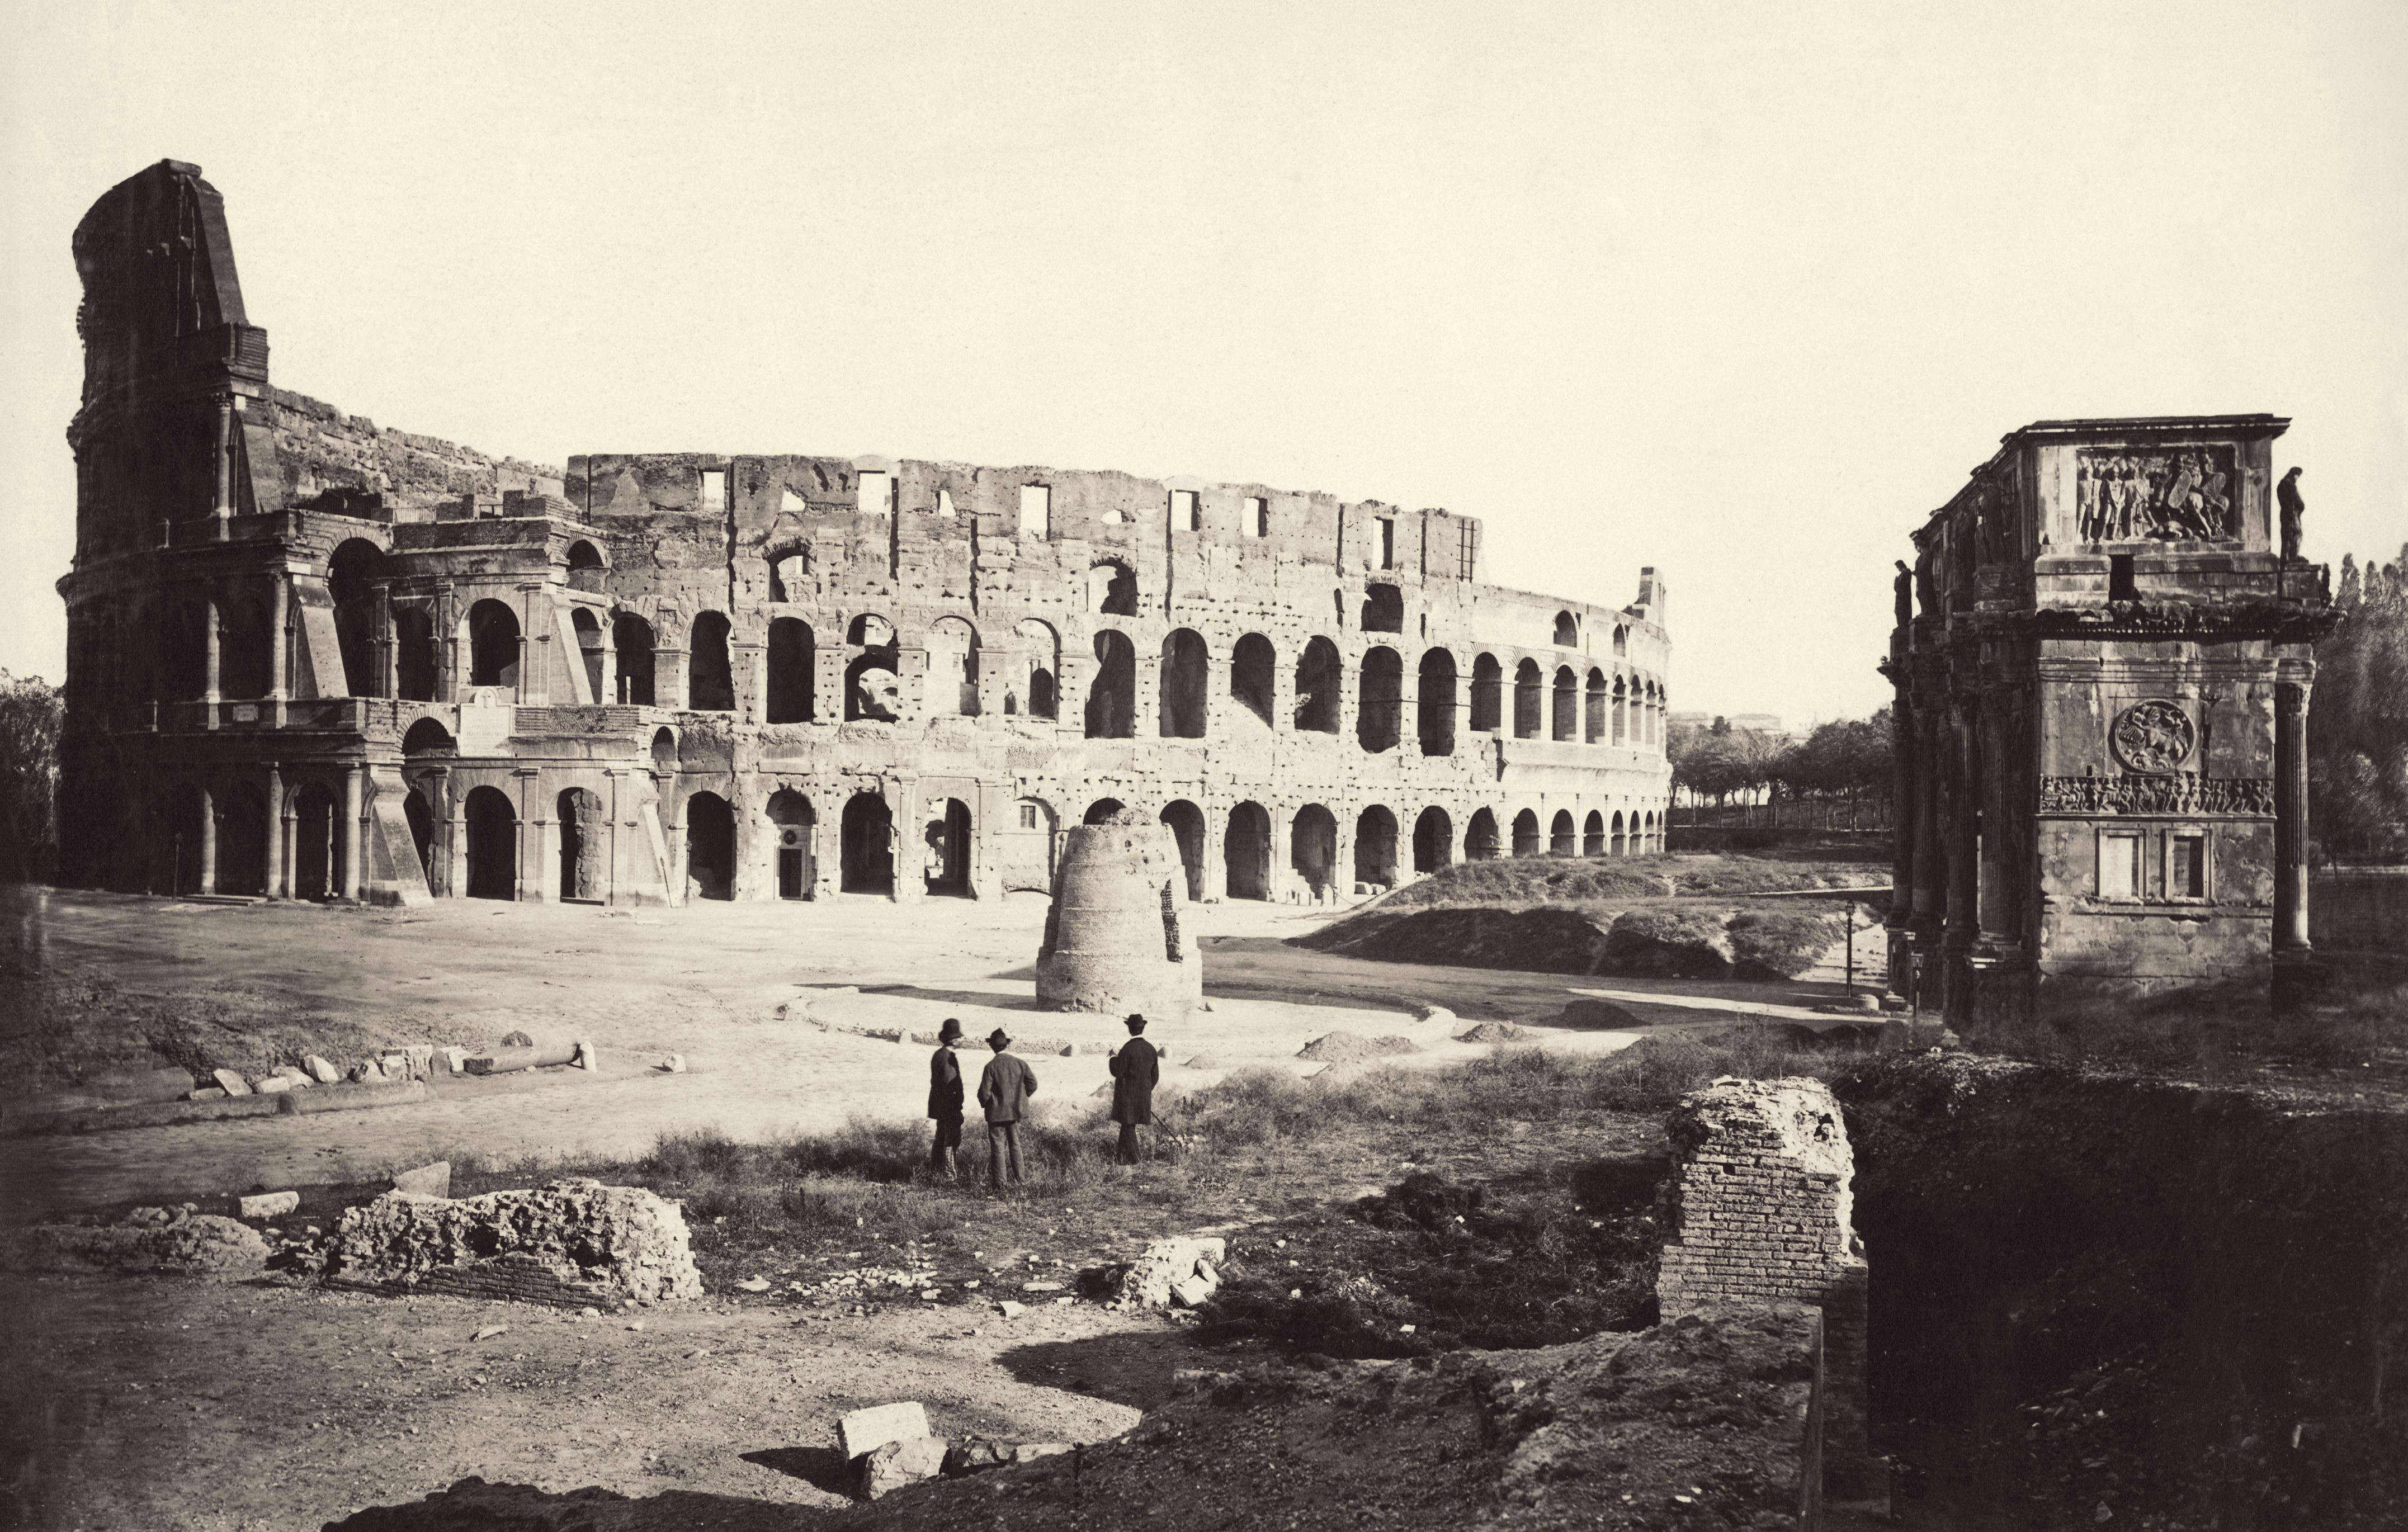 Slide 21 of 55: The Flavian Amphitheatre or Colosseum in Rome, with the Arch of Constantine on the right and Meta Sudans (a small conical brick fountain) in the centre, circa 1865. (Photo by Sean Sexton/Getty Images)